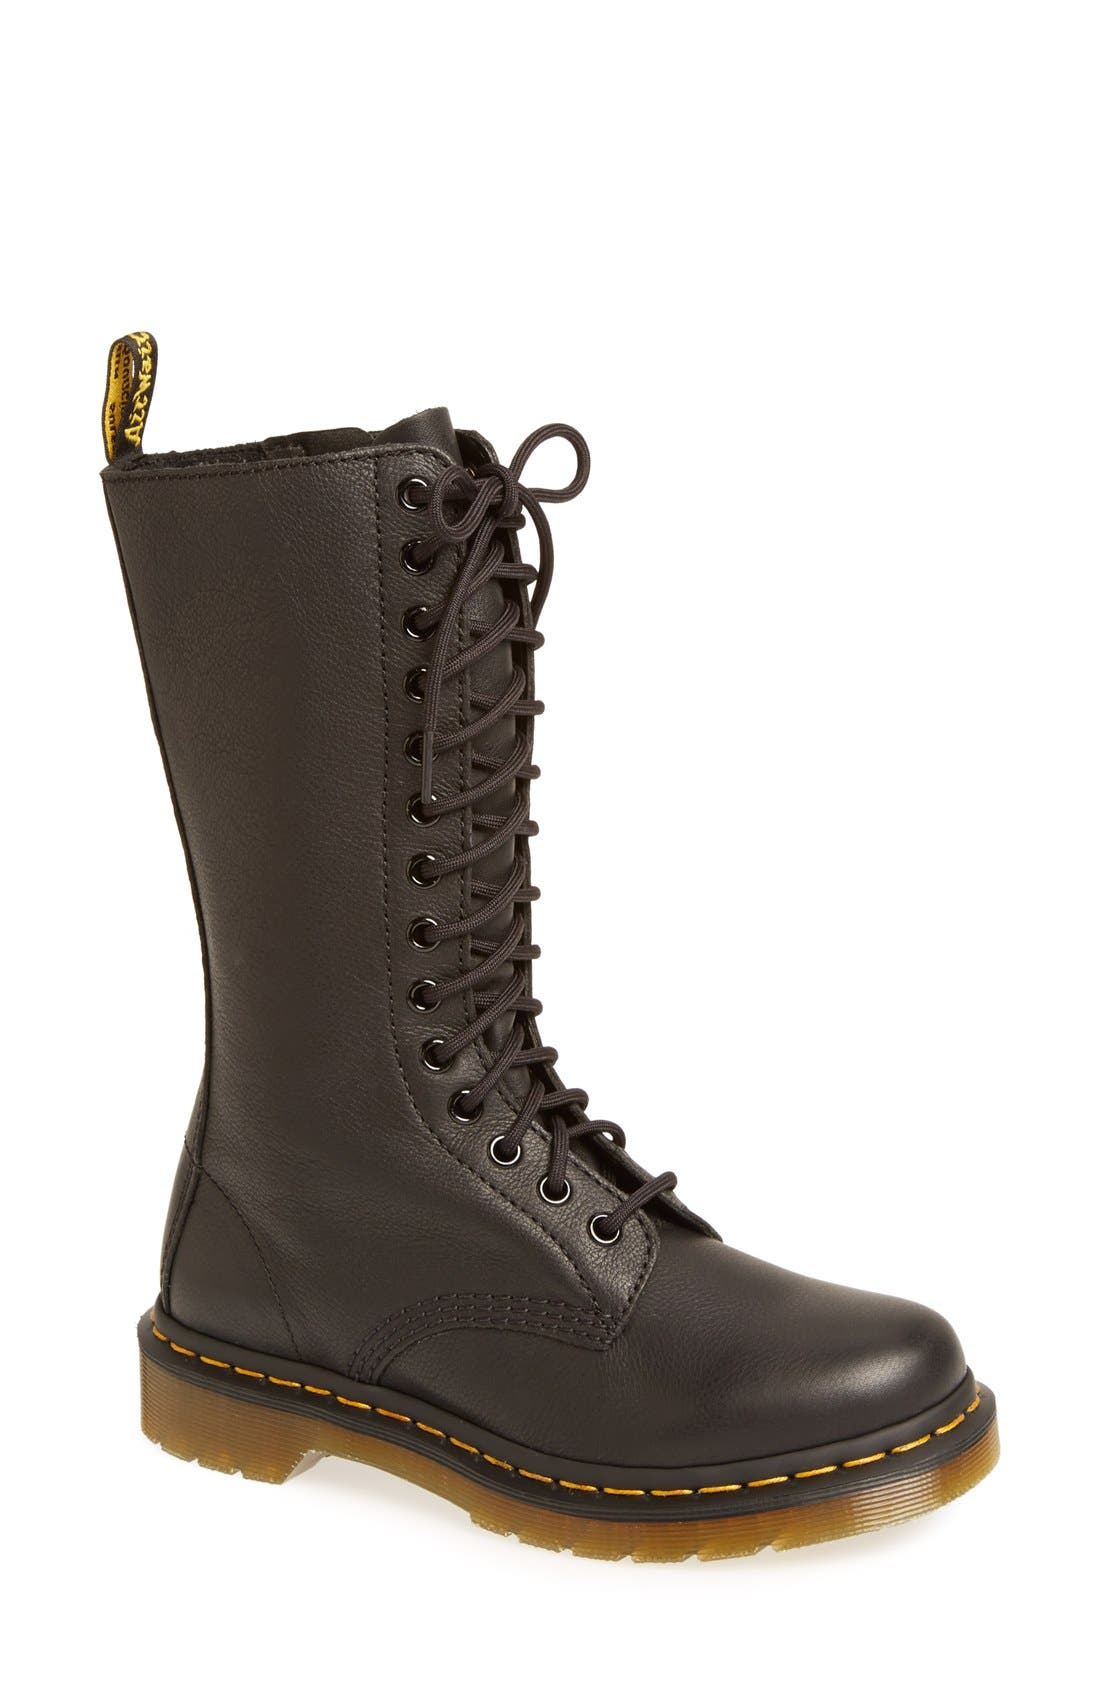 '1B99' Leather Boot,                         Main,                         color, Black Virginia